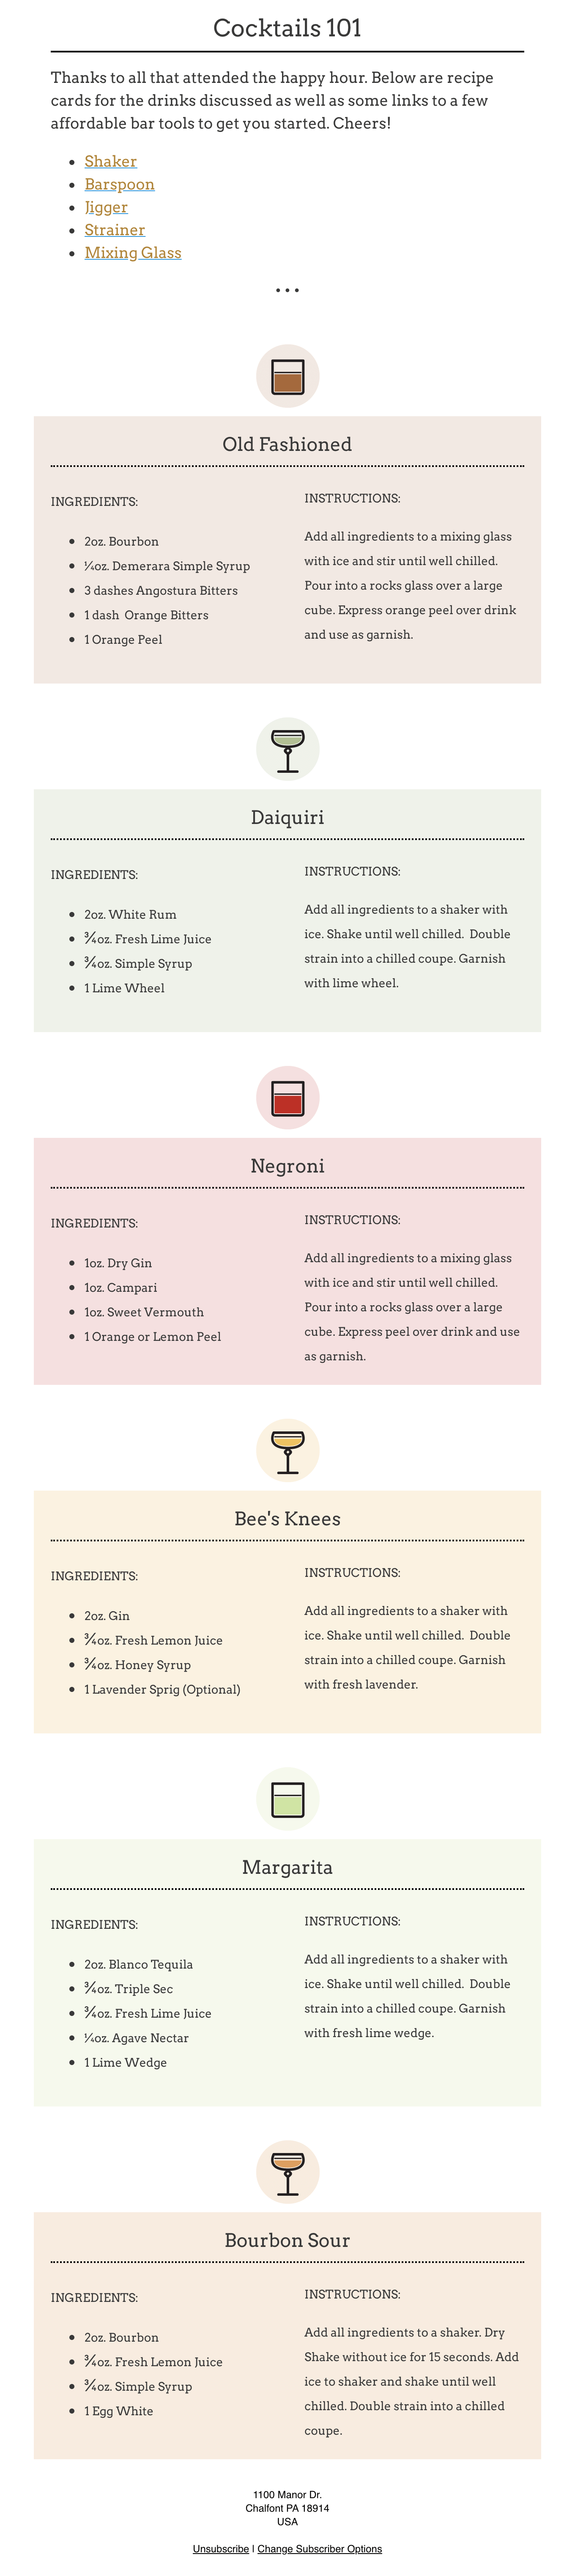 Your Cocktails 101 Recipes 🥃